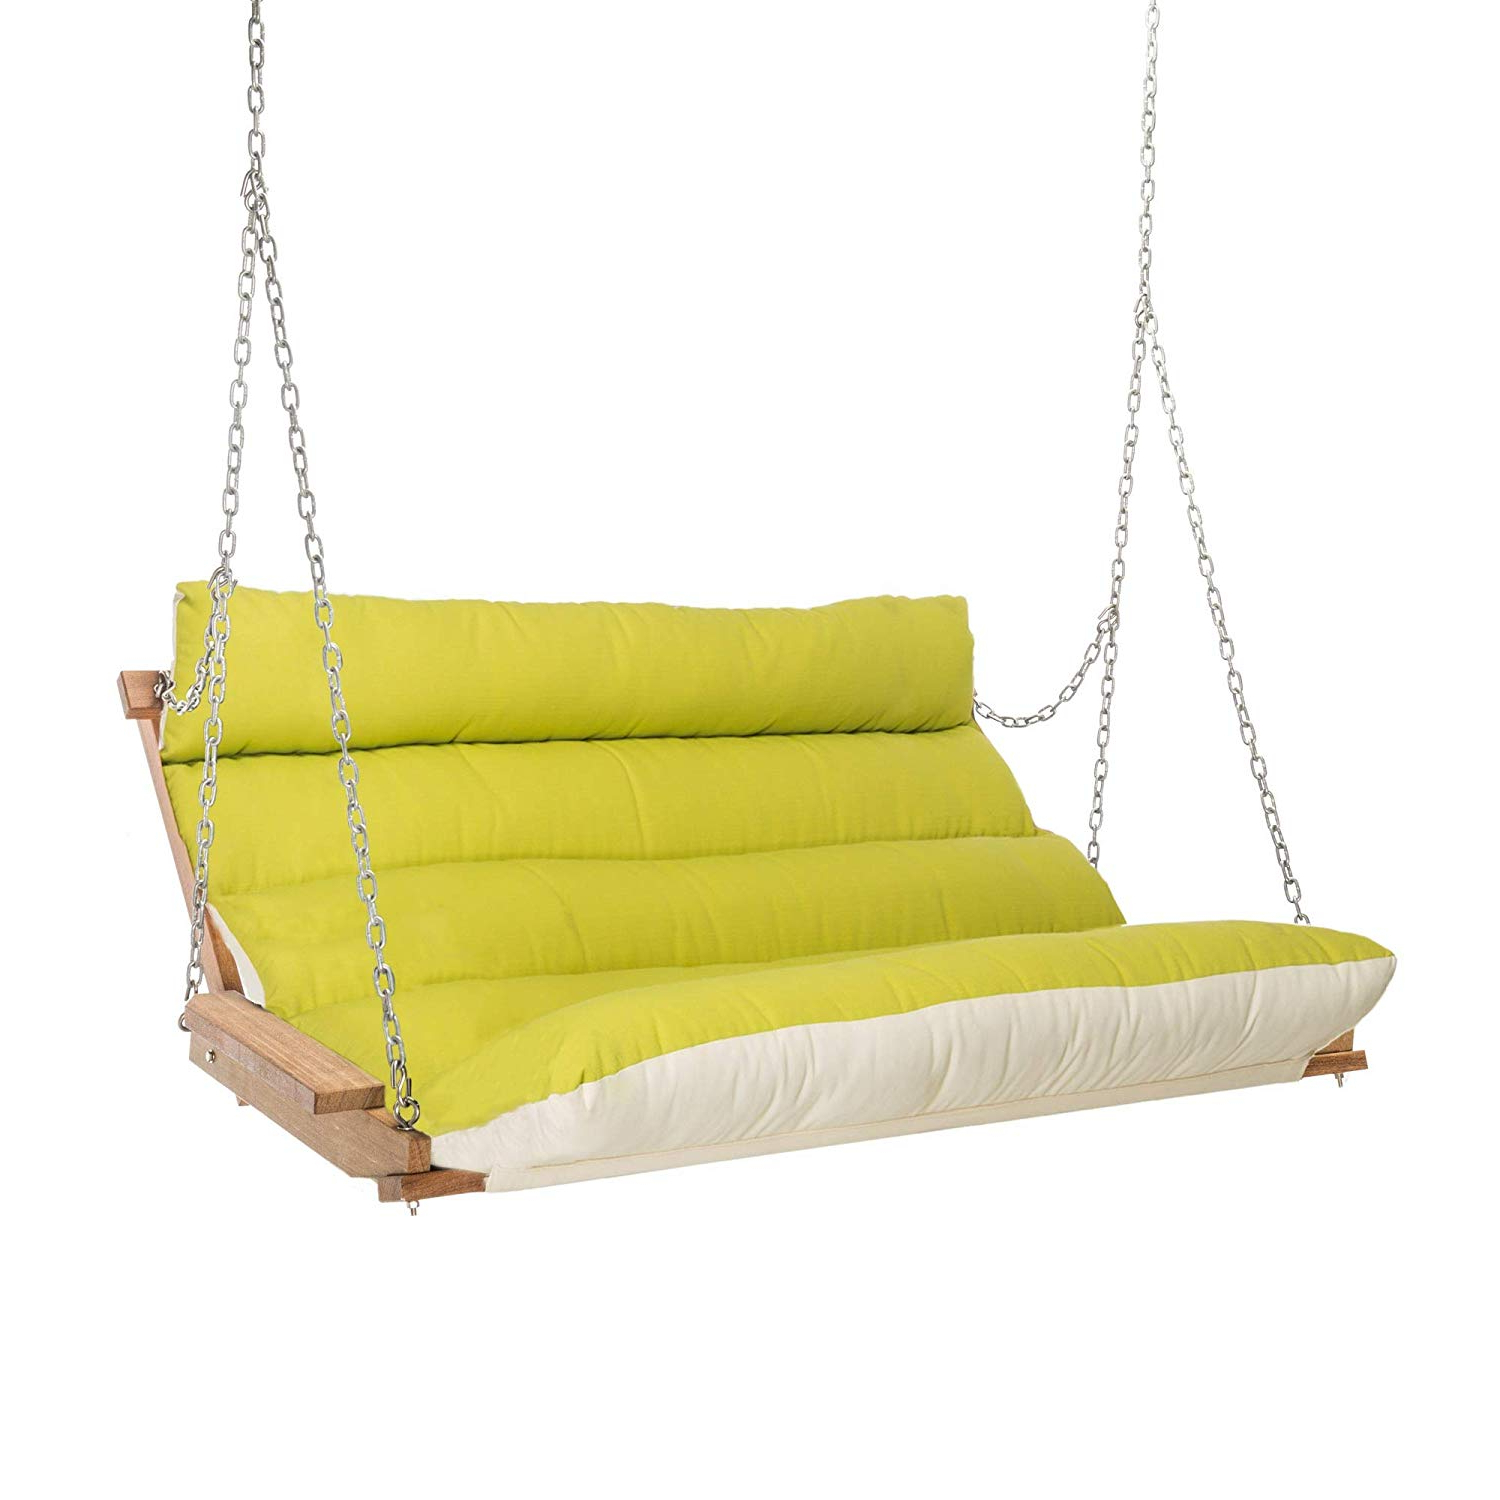 Hatteras Hammocks Sunbrella Deluxe Cushion Swing – Gateway Indigo Regarding Trendy Deluxe Cushion Sunbrella Porch Swings (View 5 of 30)